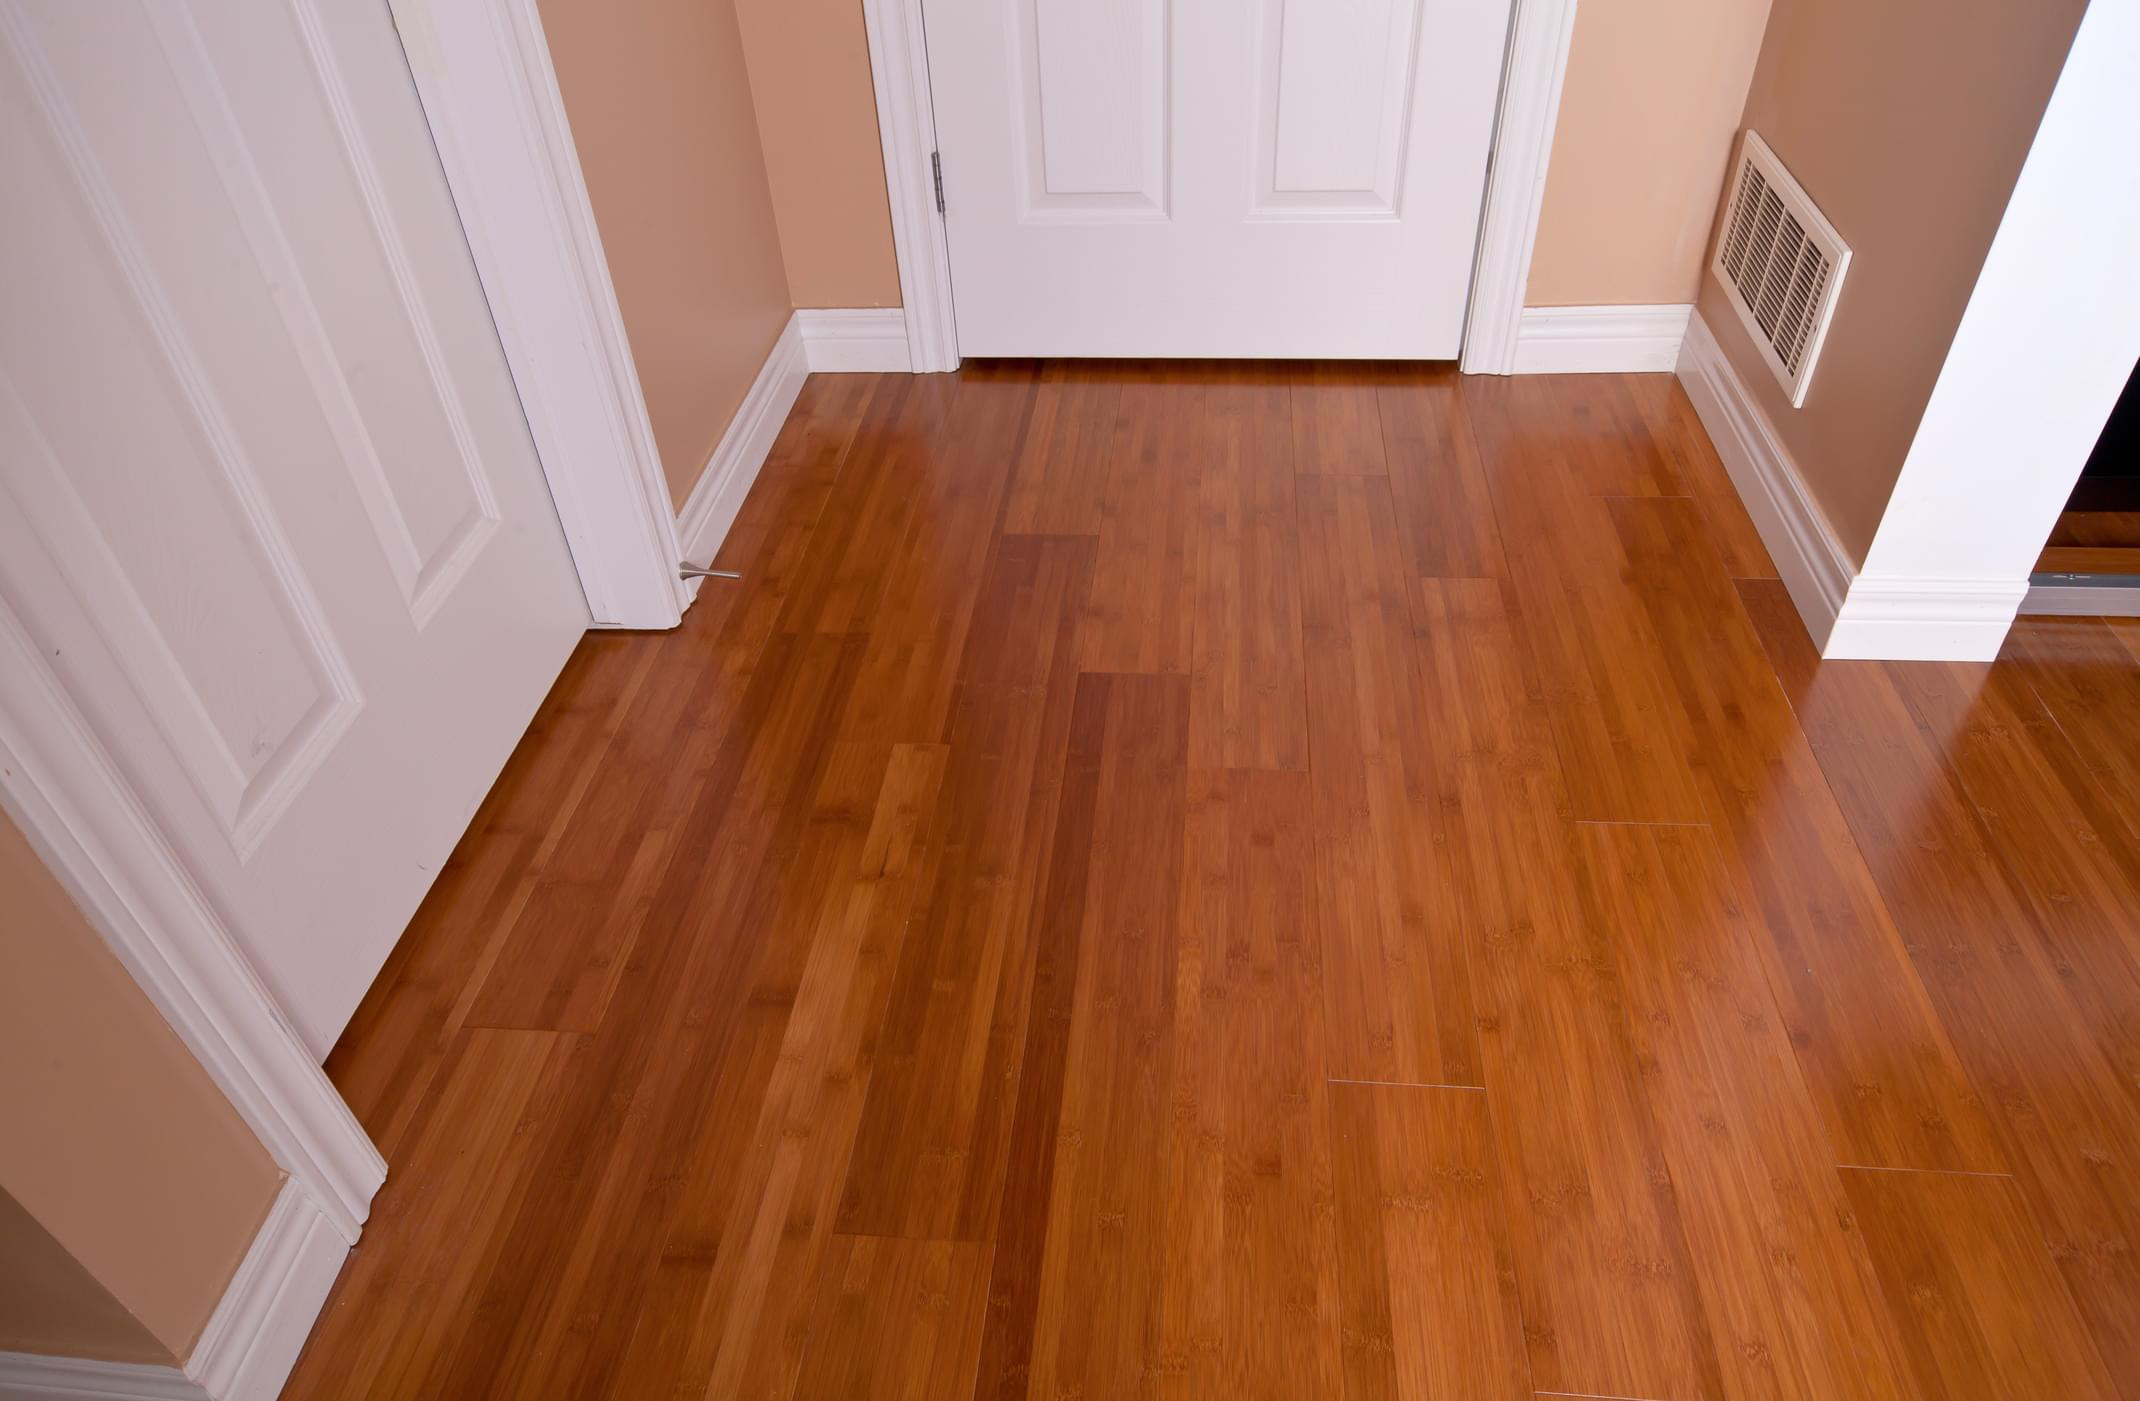 how to calculate hardwood flooring square footage of downriver carpet flooring throughout hardwood request your free in home estimate no high pressure sales no strings attached